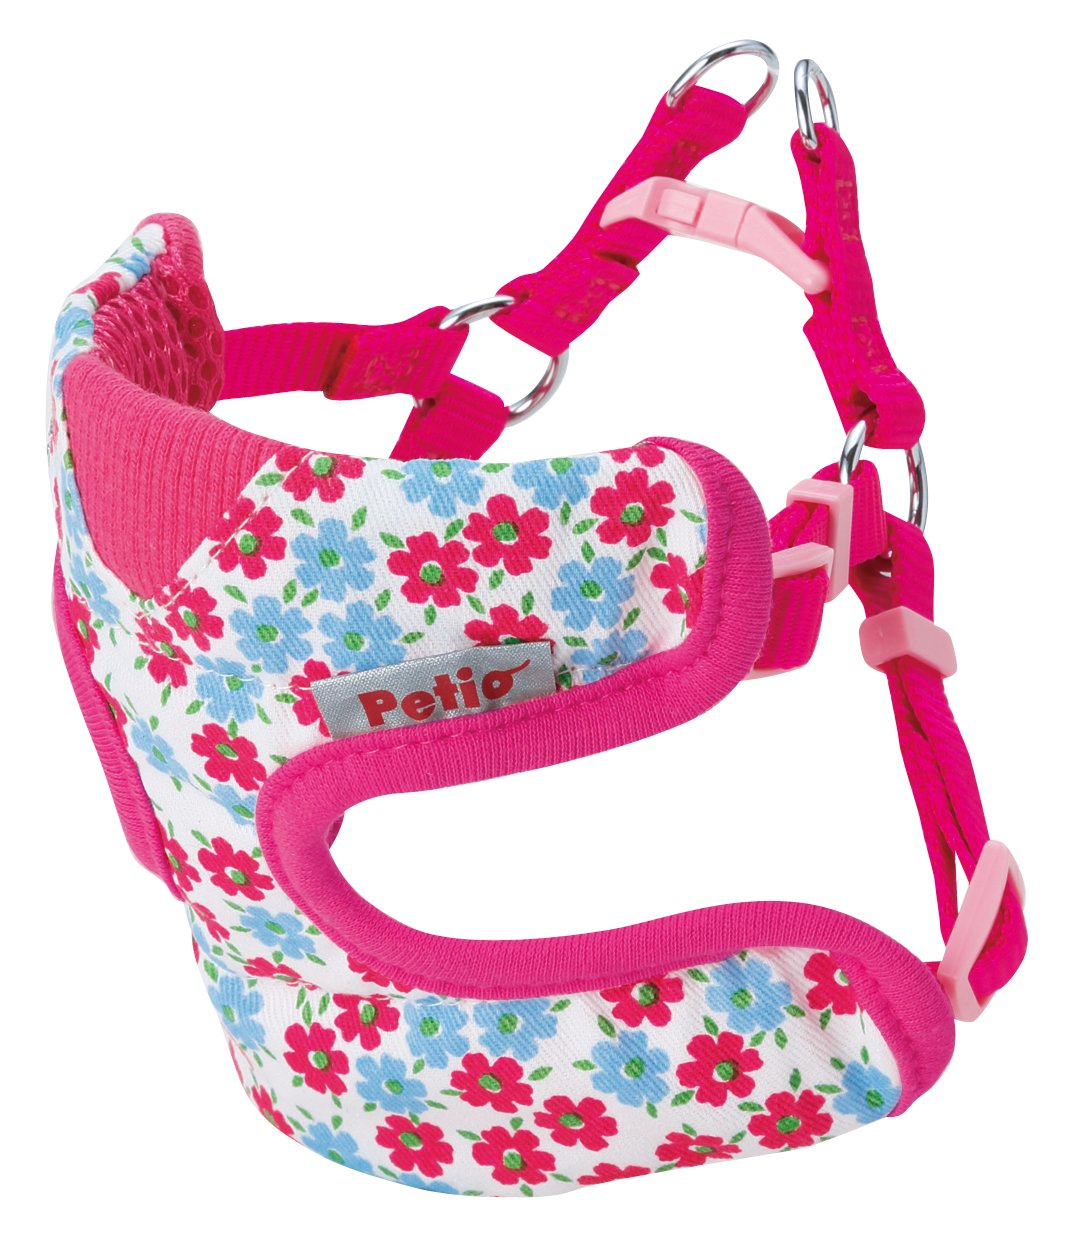 Petio (Petio) colorful Flower Best Harness SS (Small Dogs) Pink